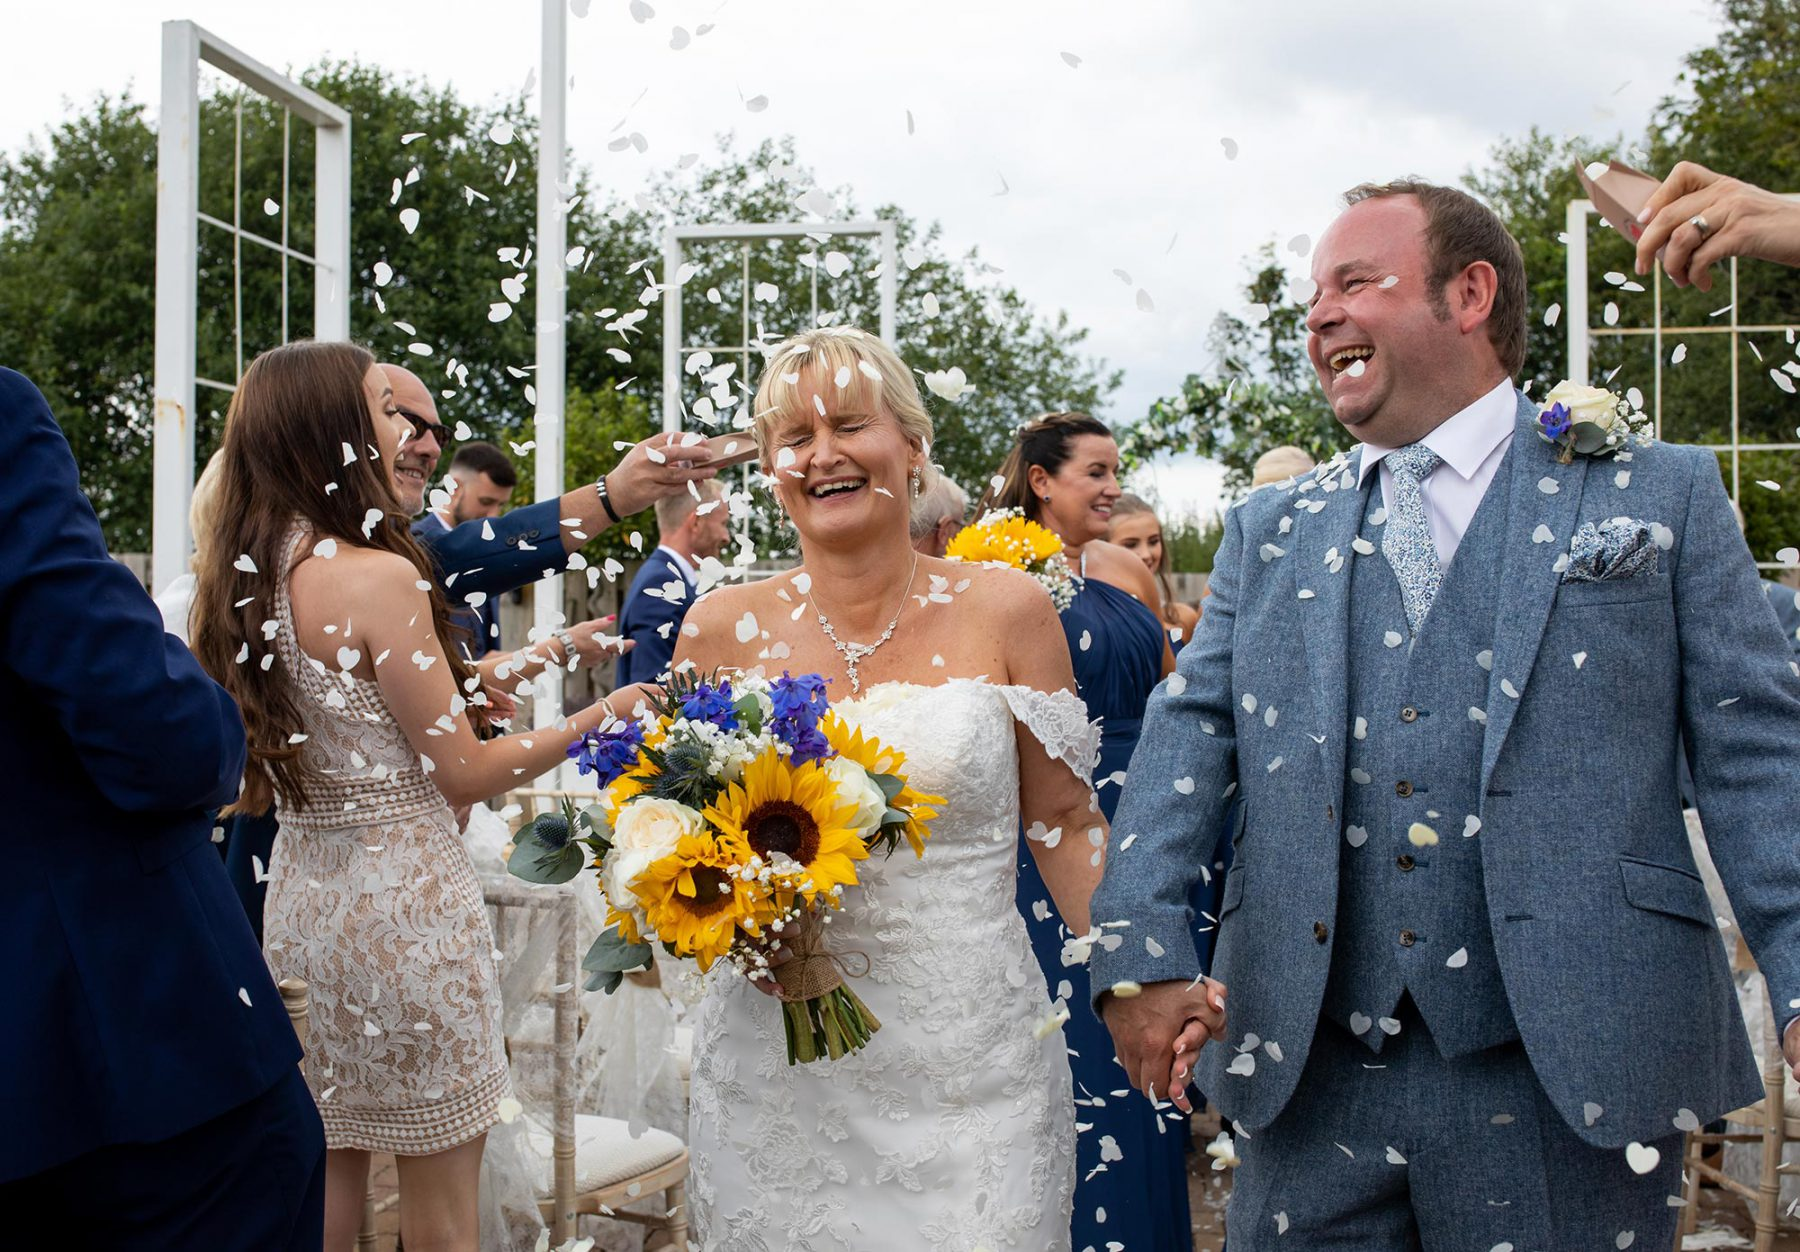 Confetti picture with the bride and groom